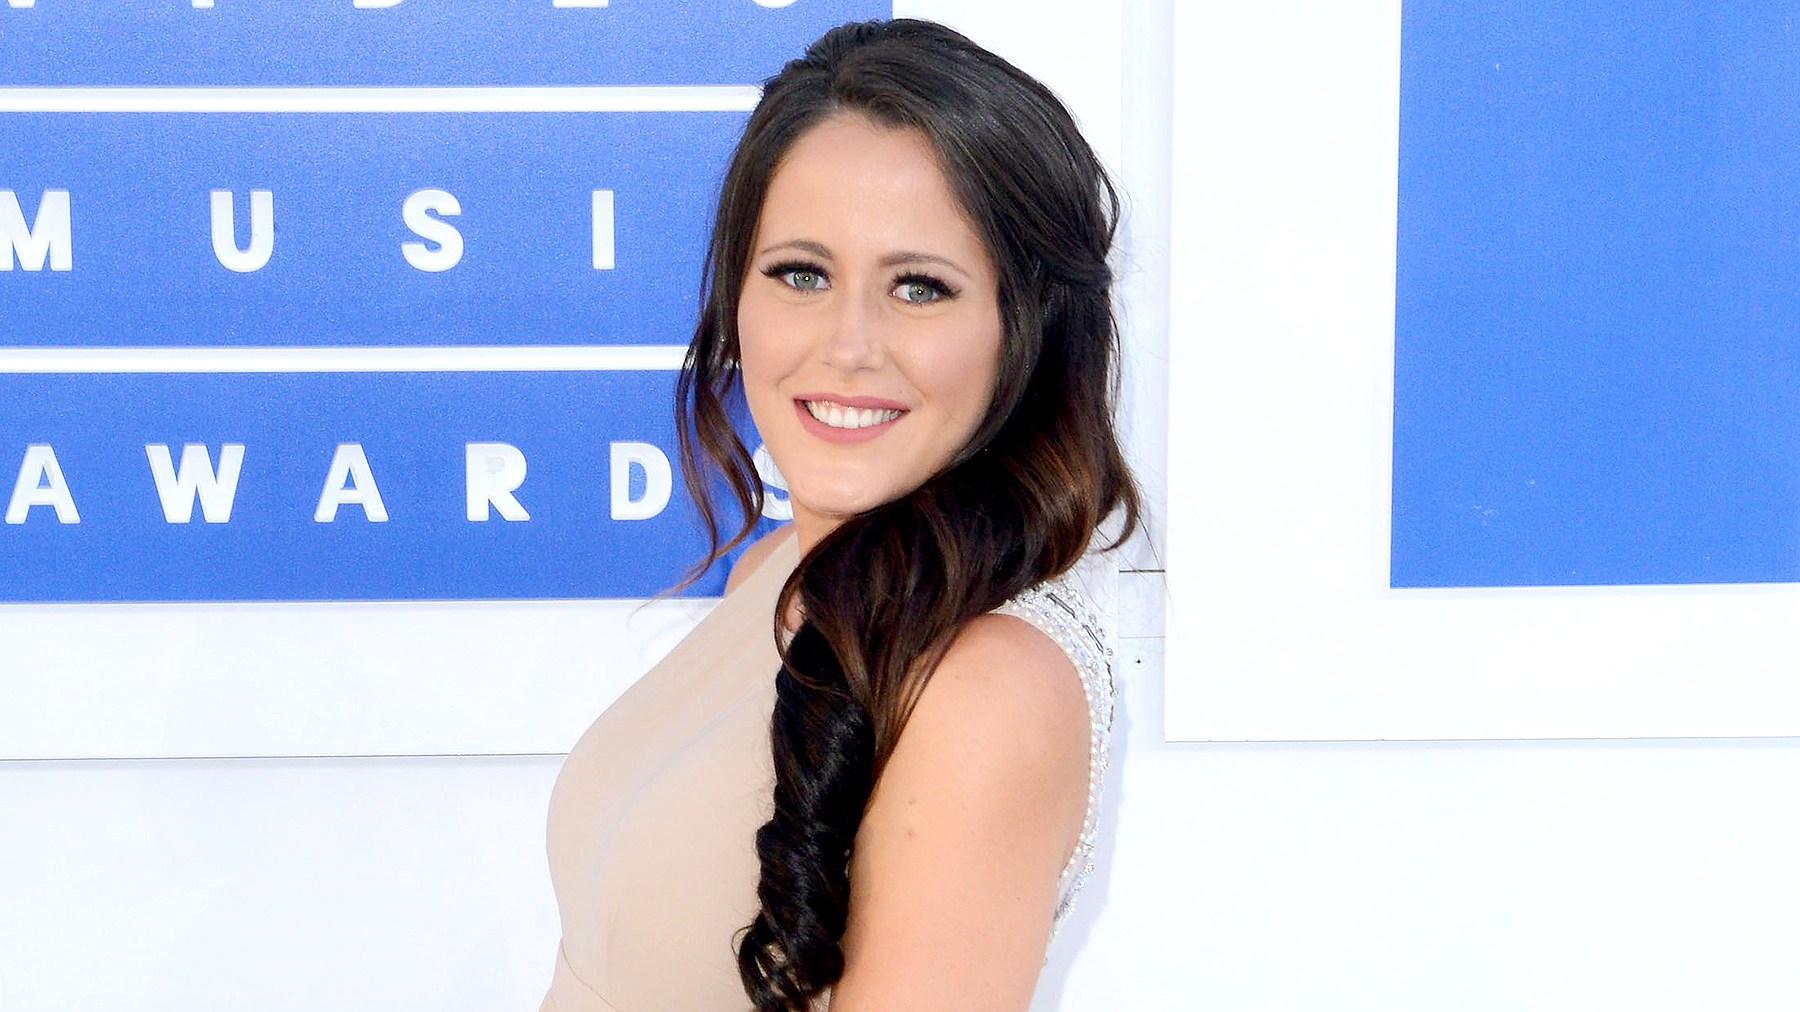 Jenelle Evans arrives at the 2016 MTV Video Music Awards.